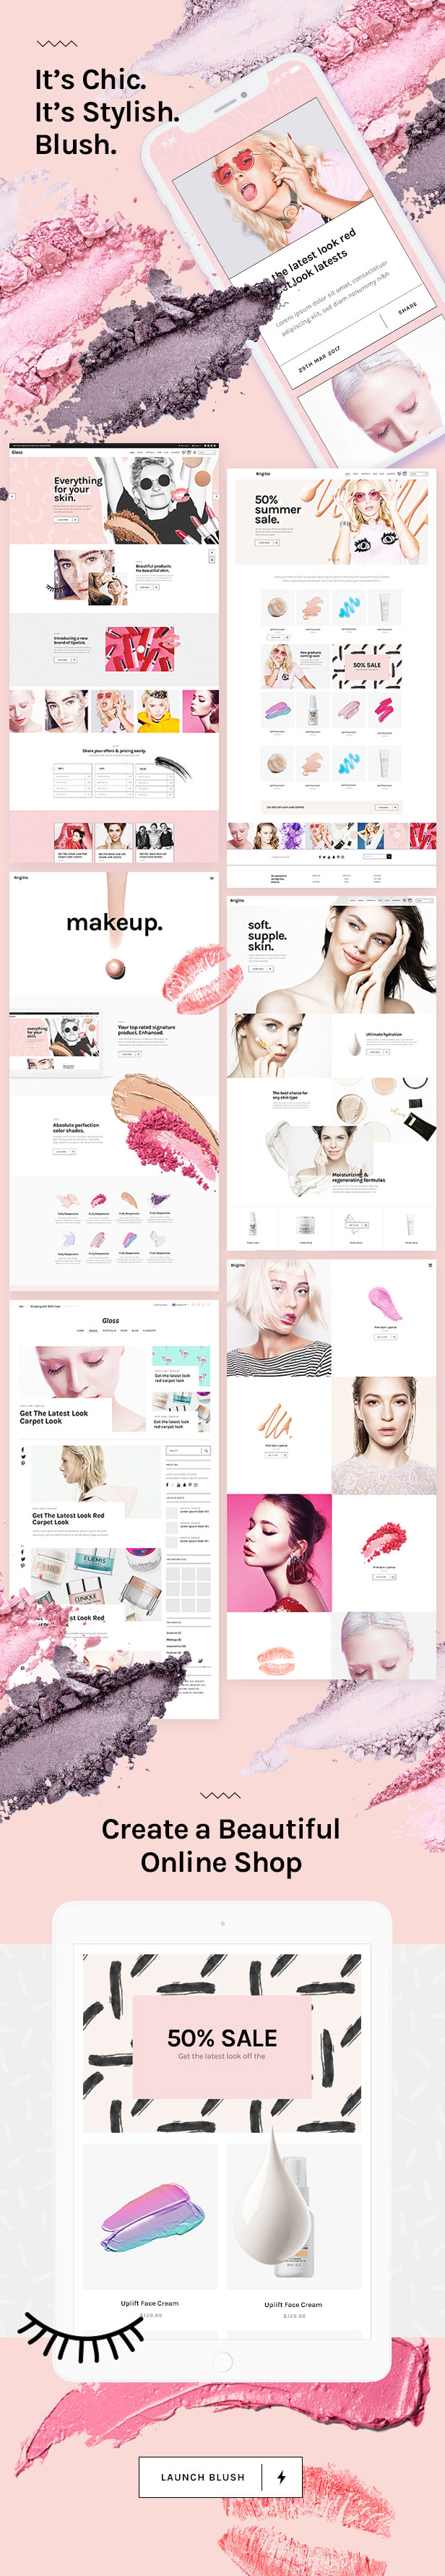 Blush - A Trendy Beauty and Lifestyle Theme - 1